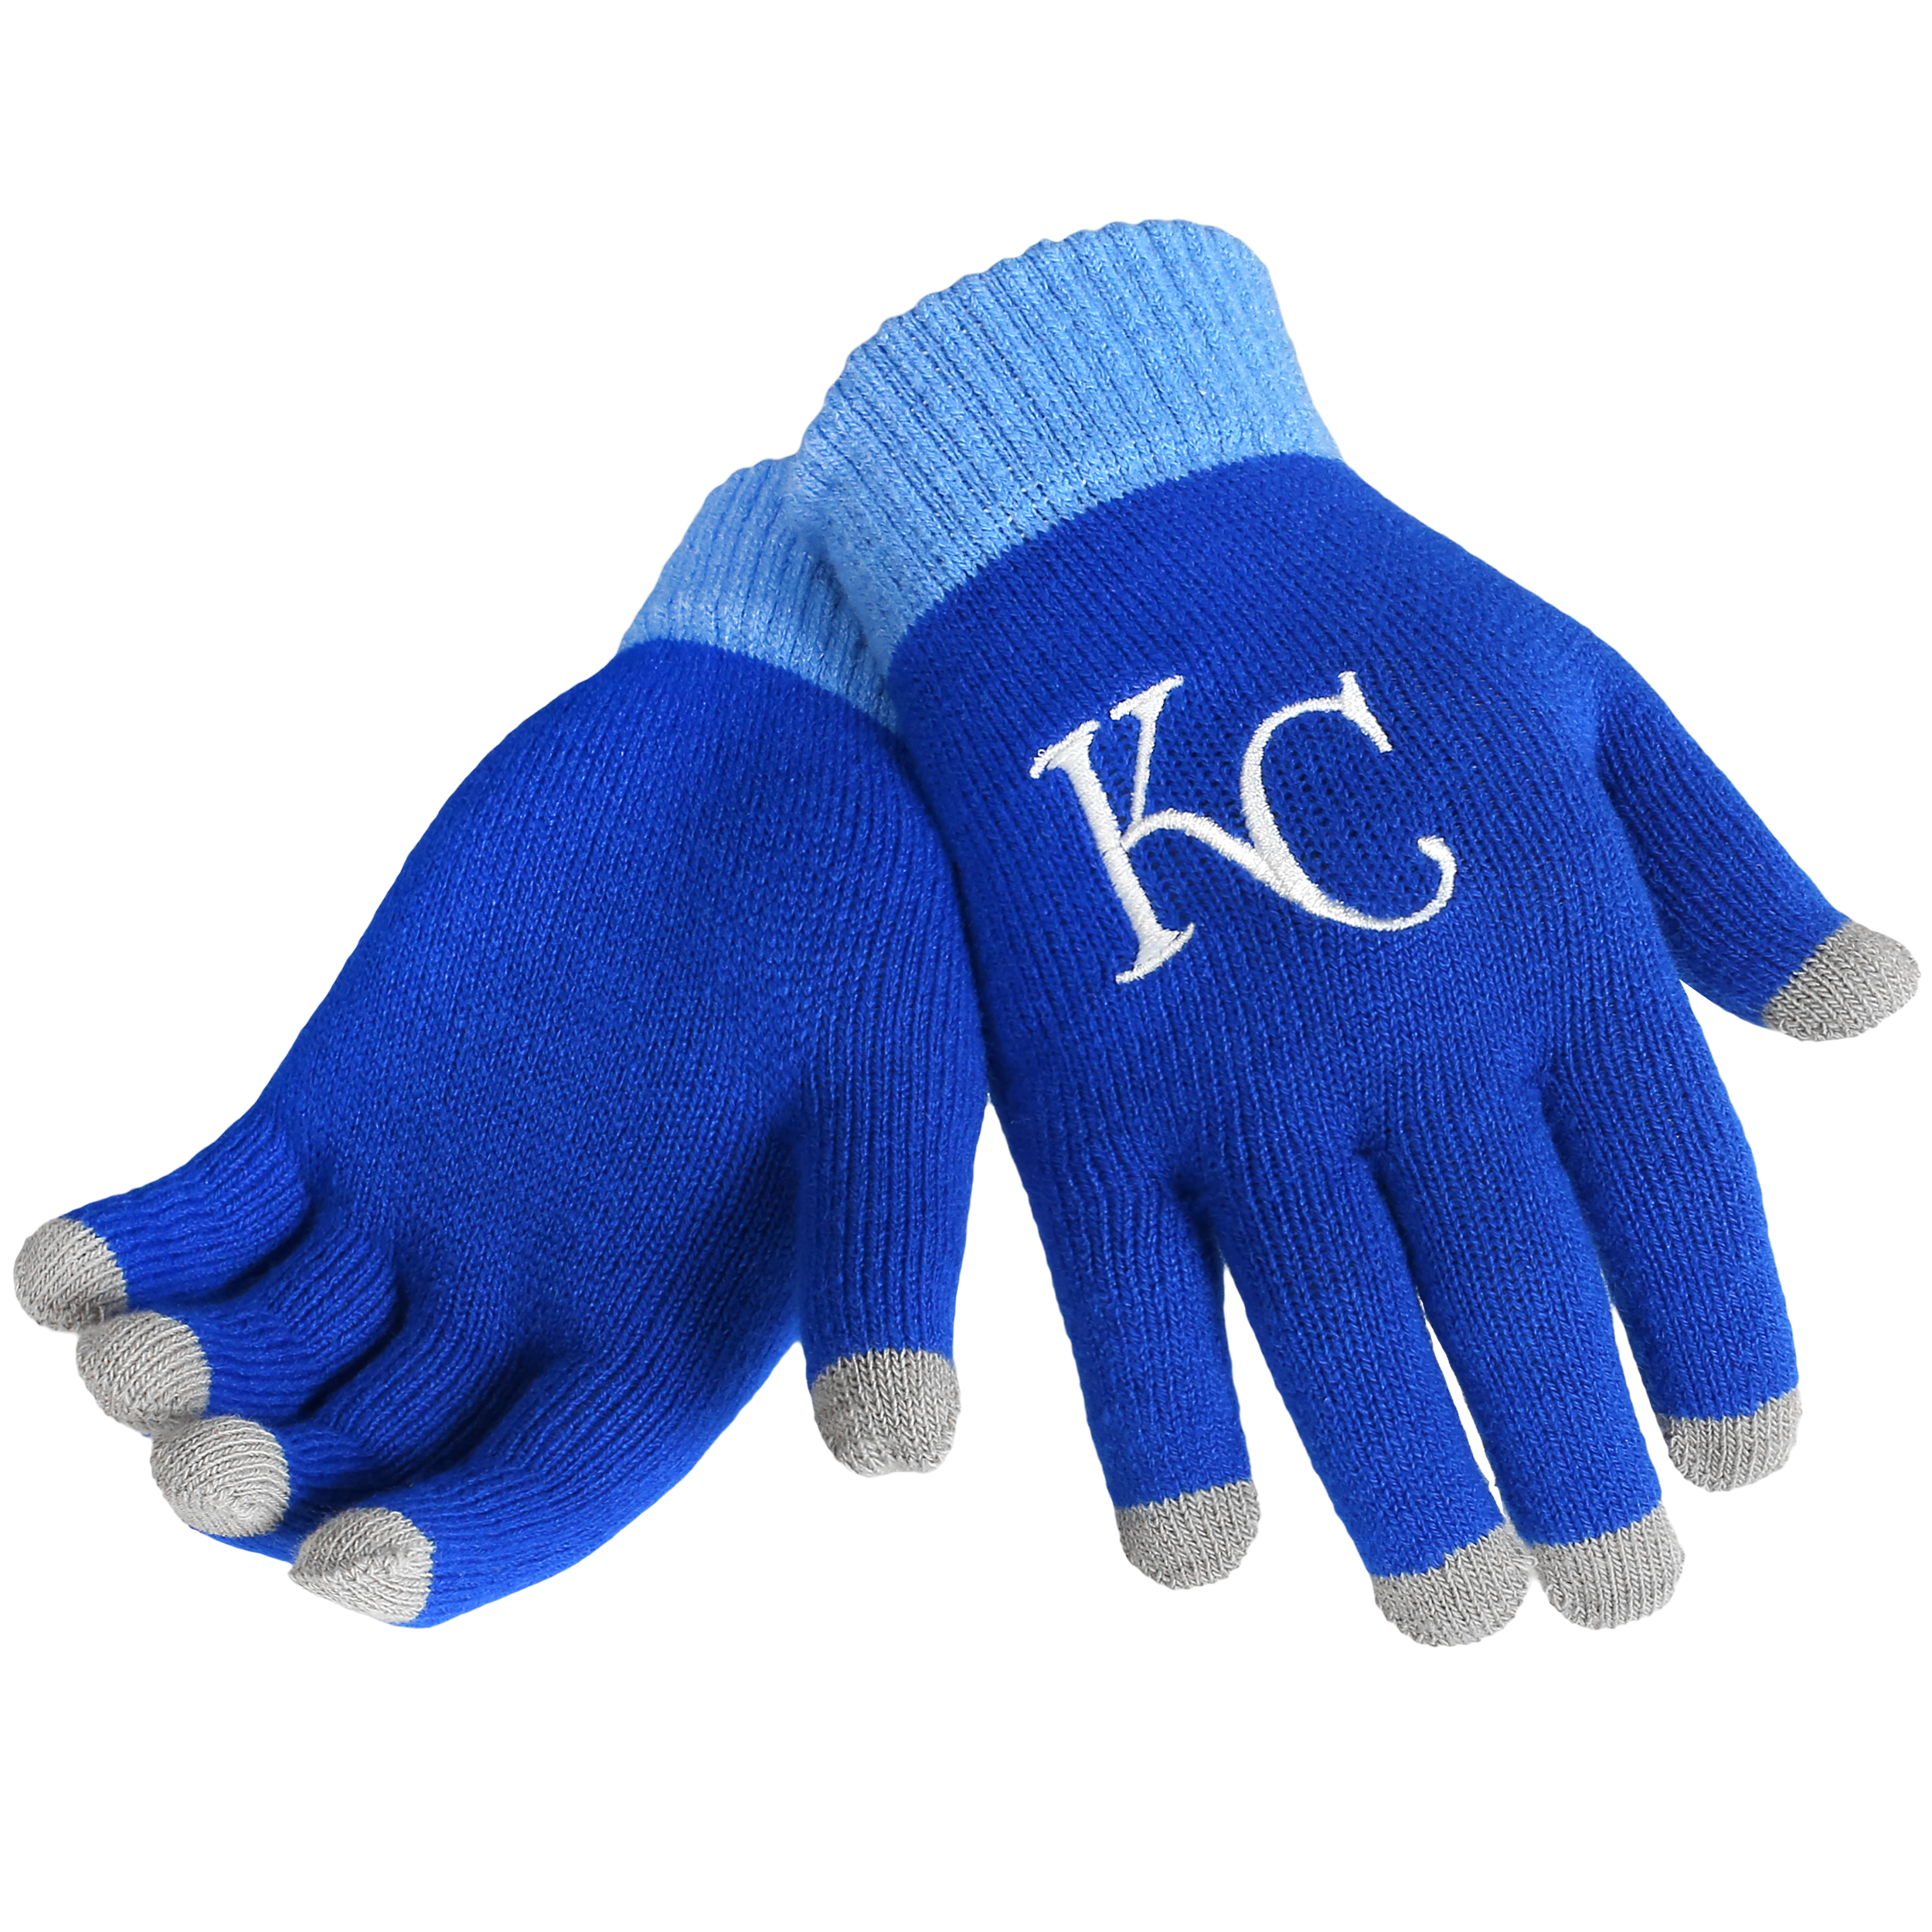 Kansas City Royals Official MLB Glove Solid Outdoor Winter Stretch Knit by Forever Collectibles 262107 by Forever Collectibles